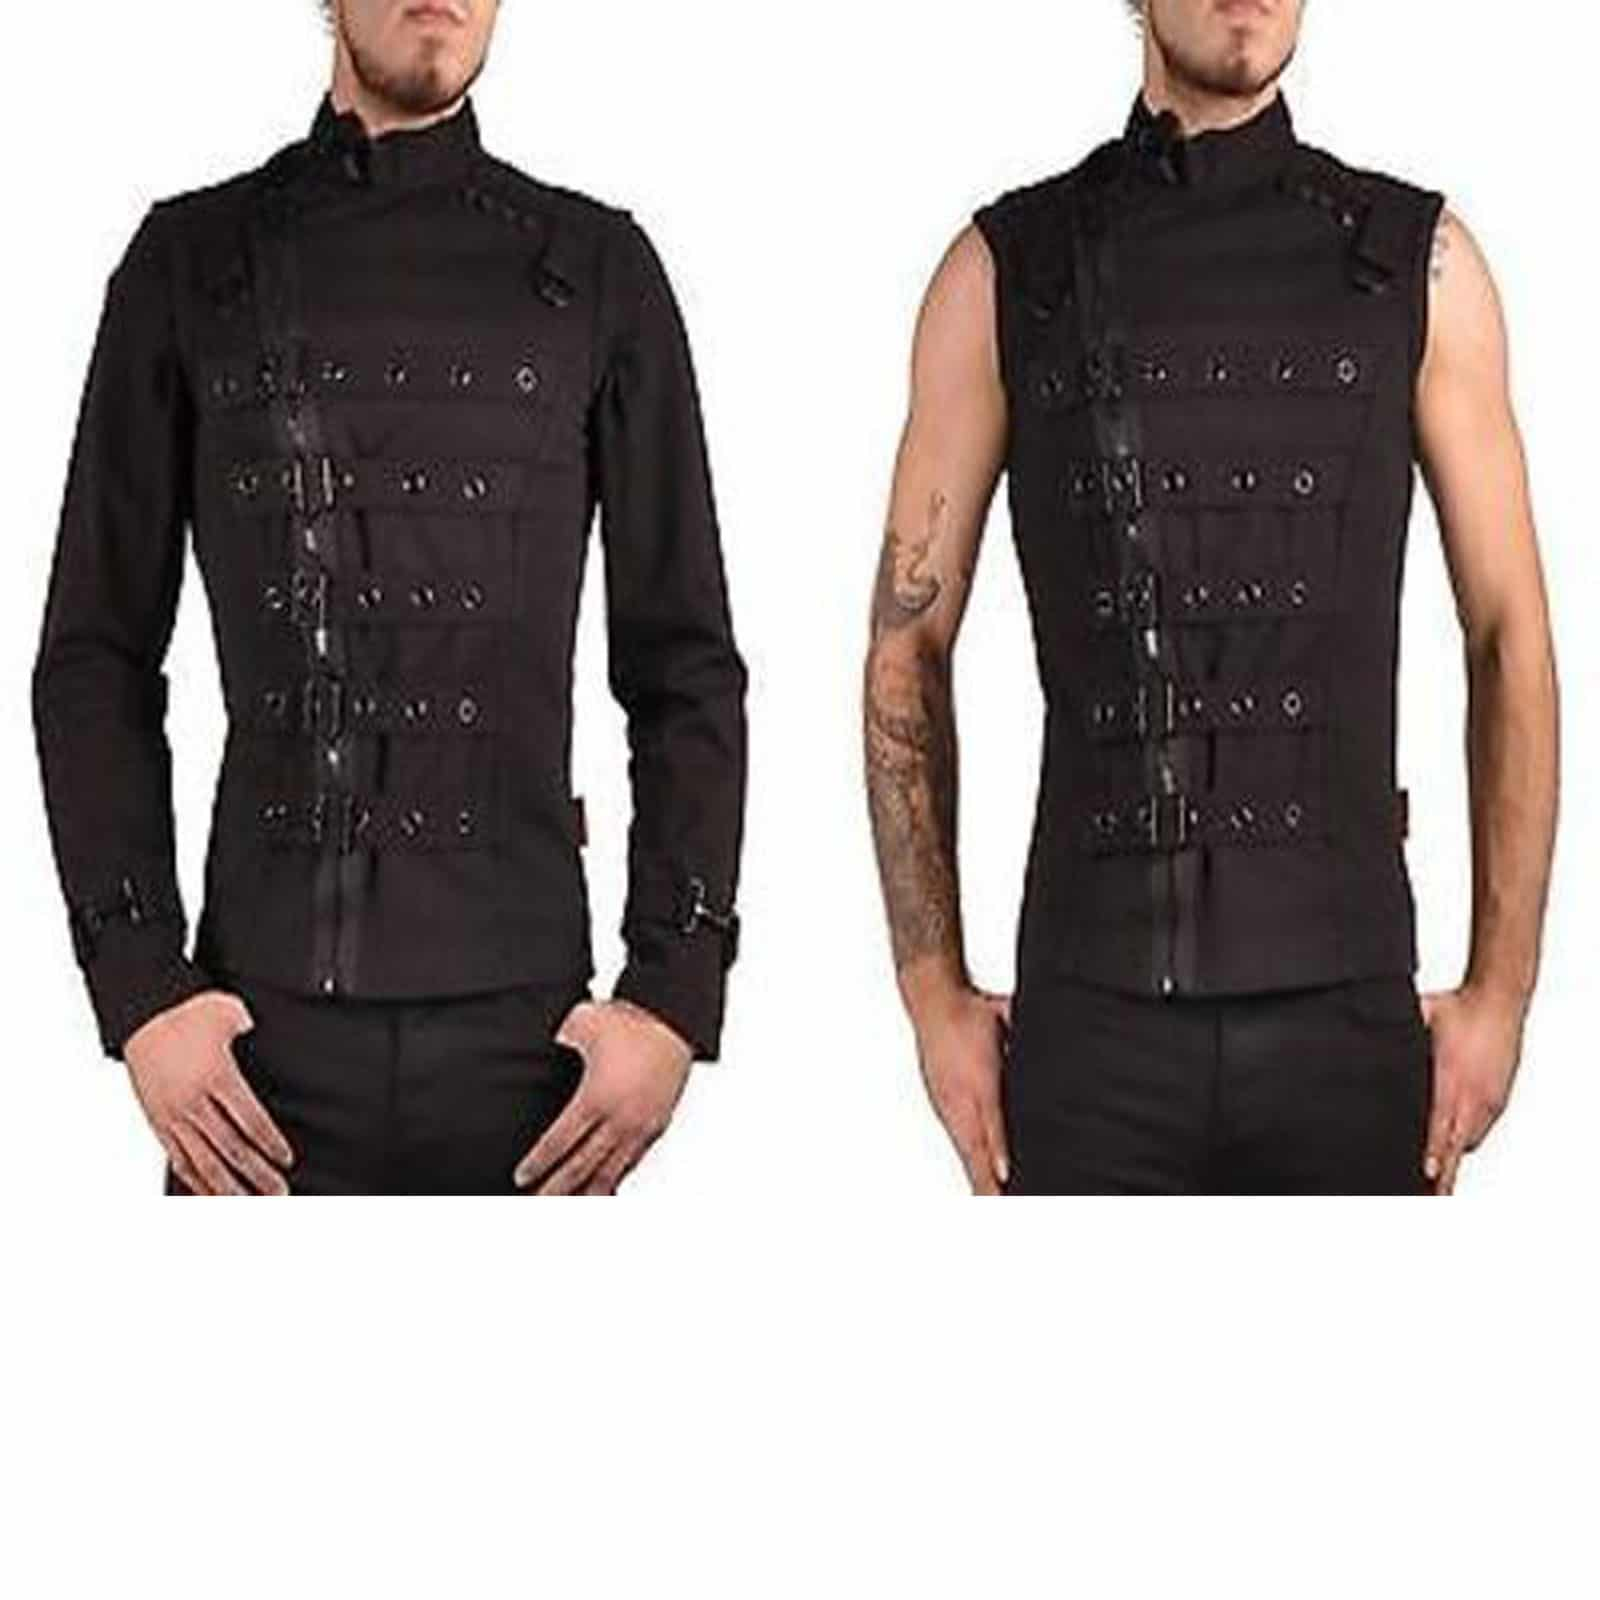 Goth clothing mens bondage top